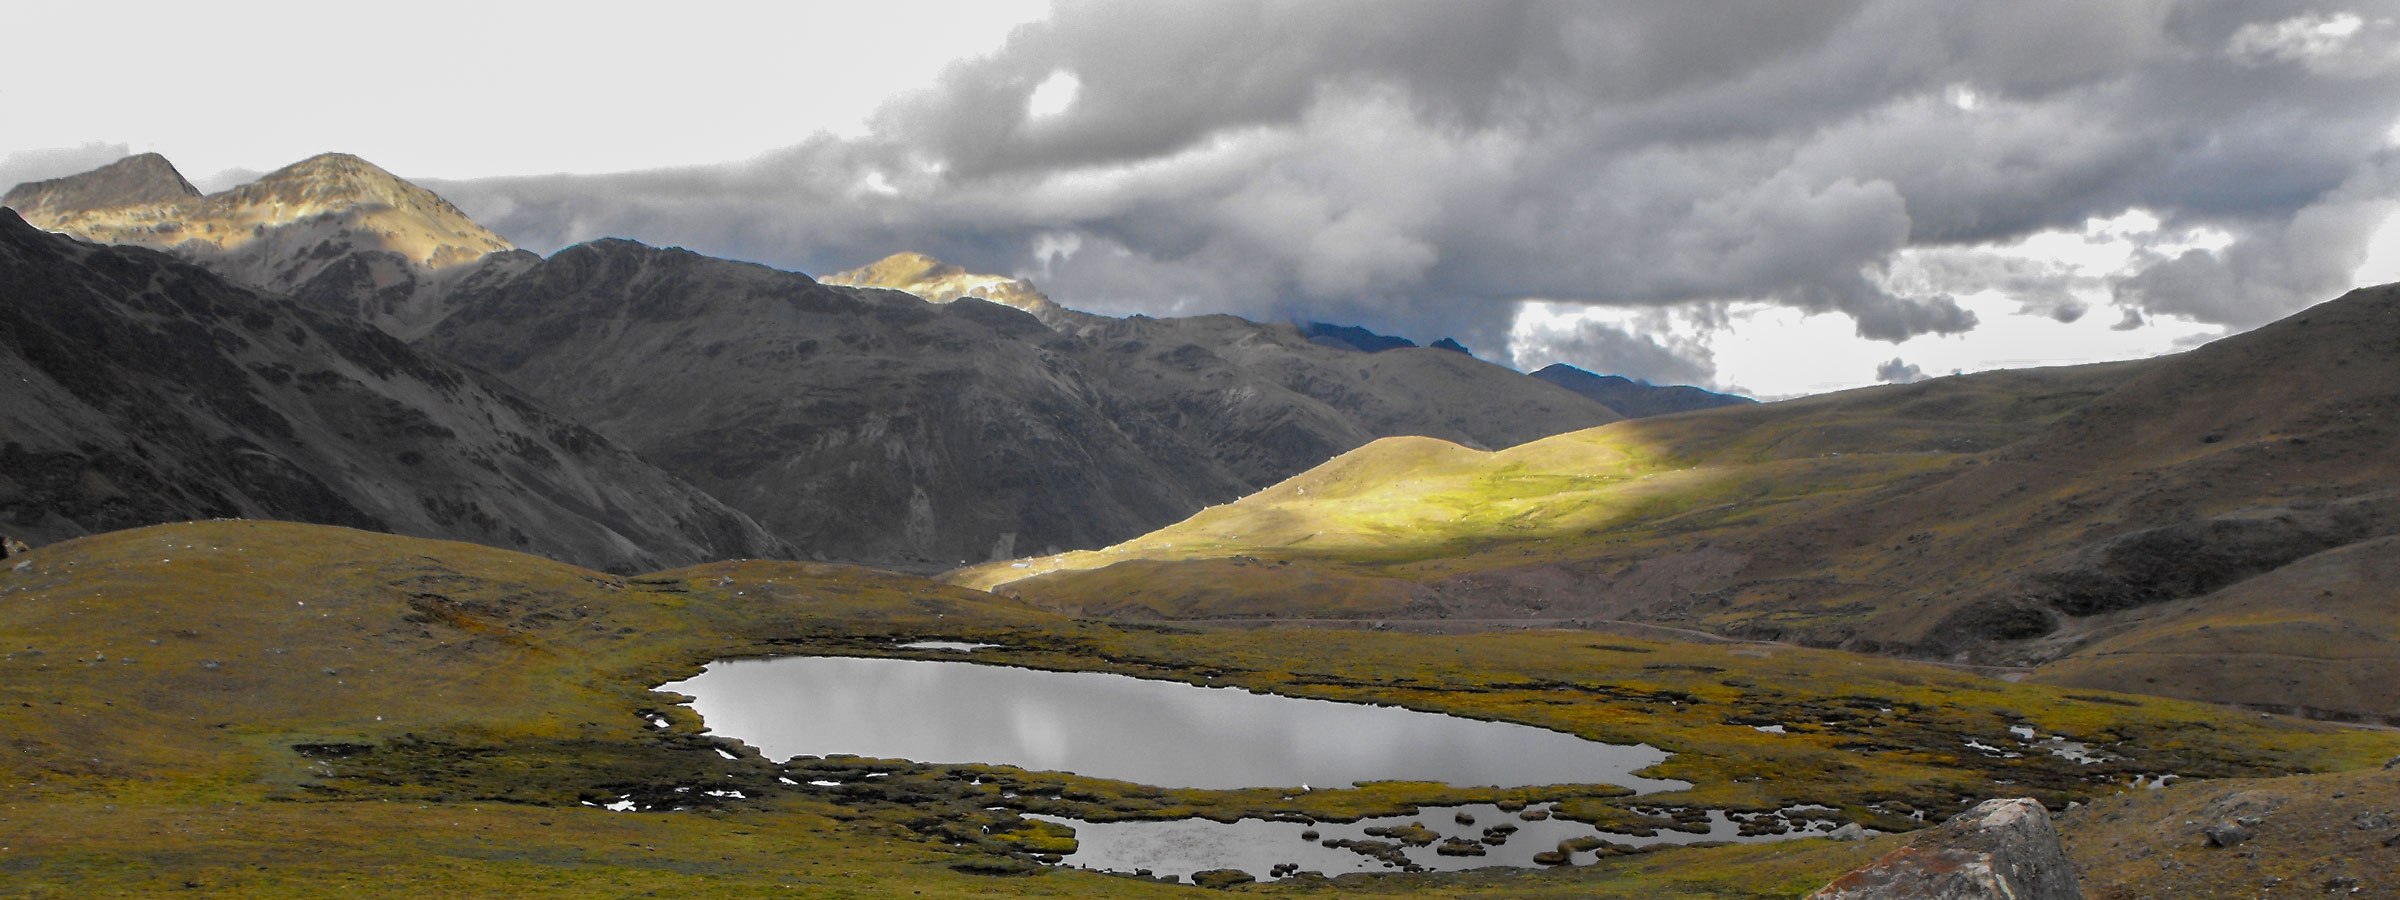 The Lares Trek is an off-the-beaten trail that begins near the town of Lares, 40 miles north of Cusco and 35 miles south east of Machu Picchu (see map below). The trek itself lies in the Lares Valley, east of the Urubamba mountain range, which traverses part of the Sacred Valley.